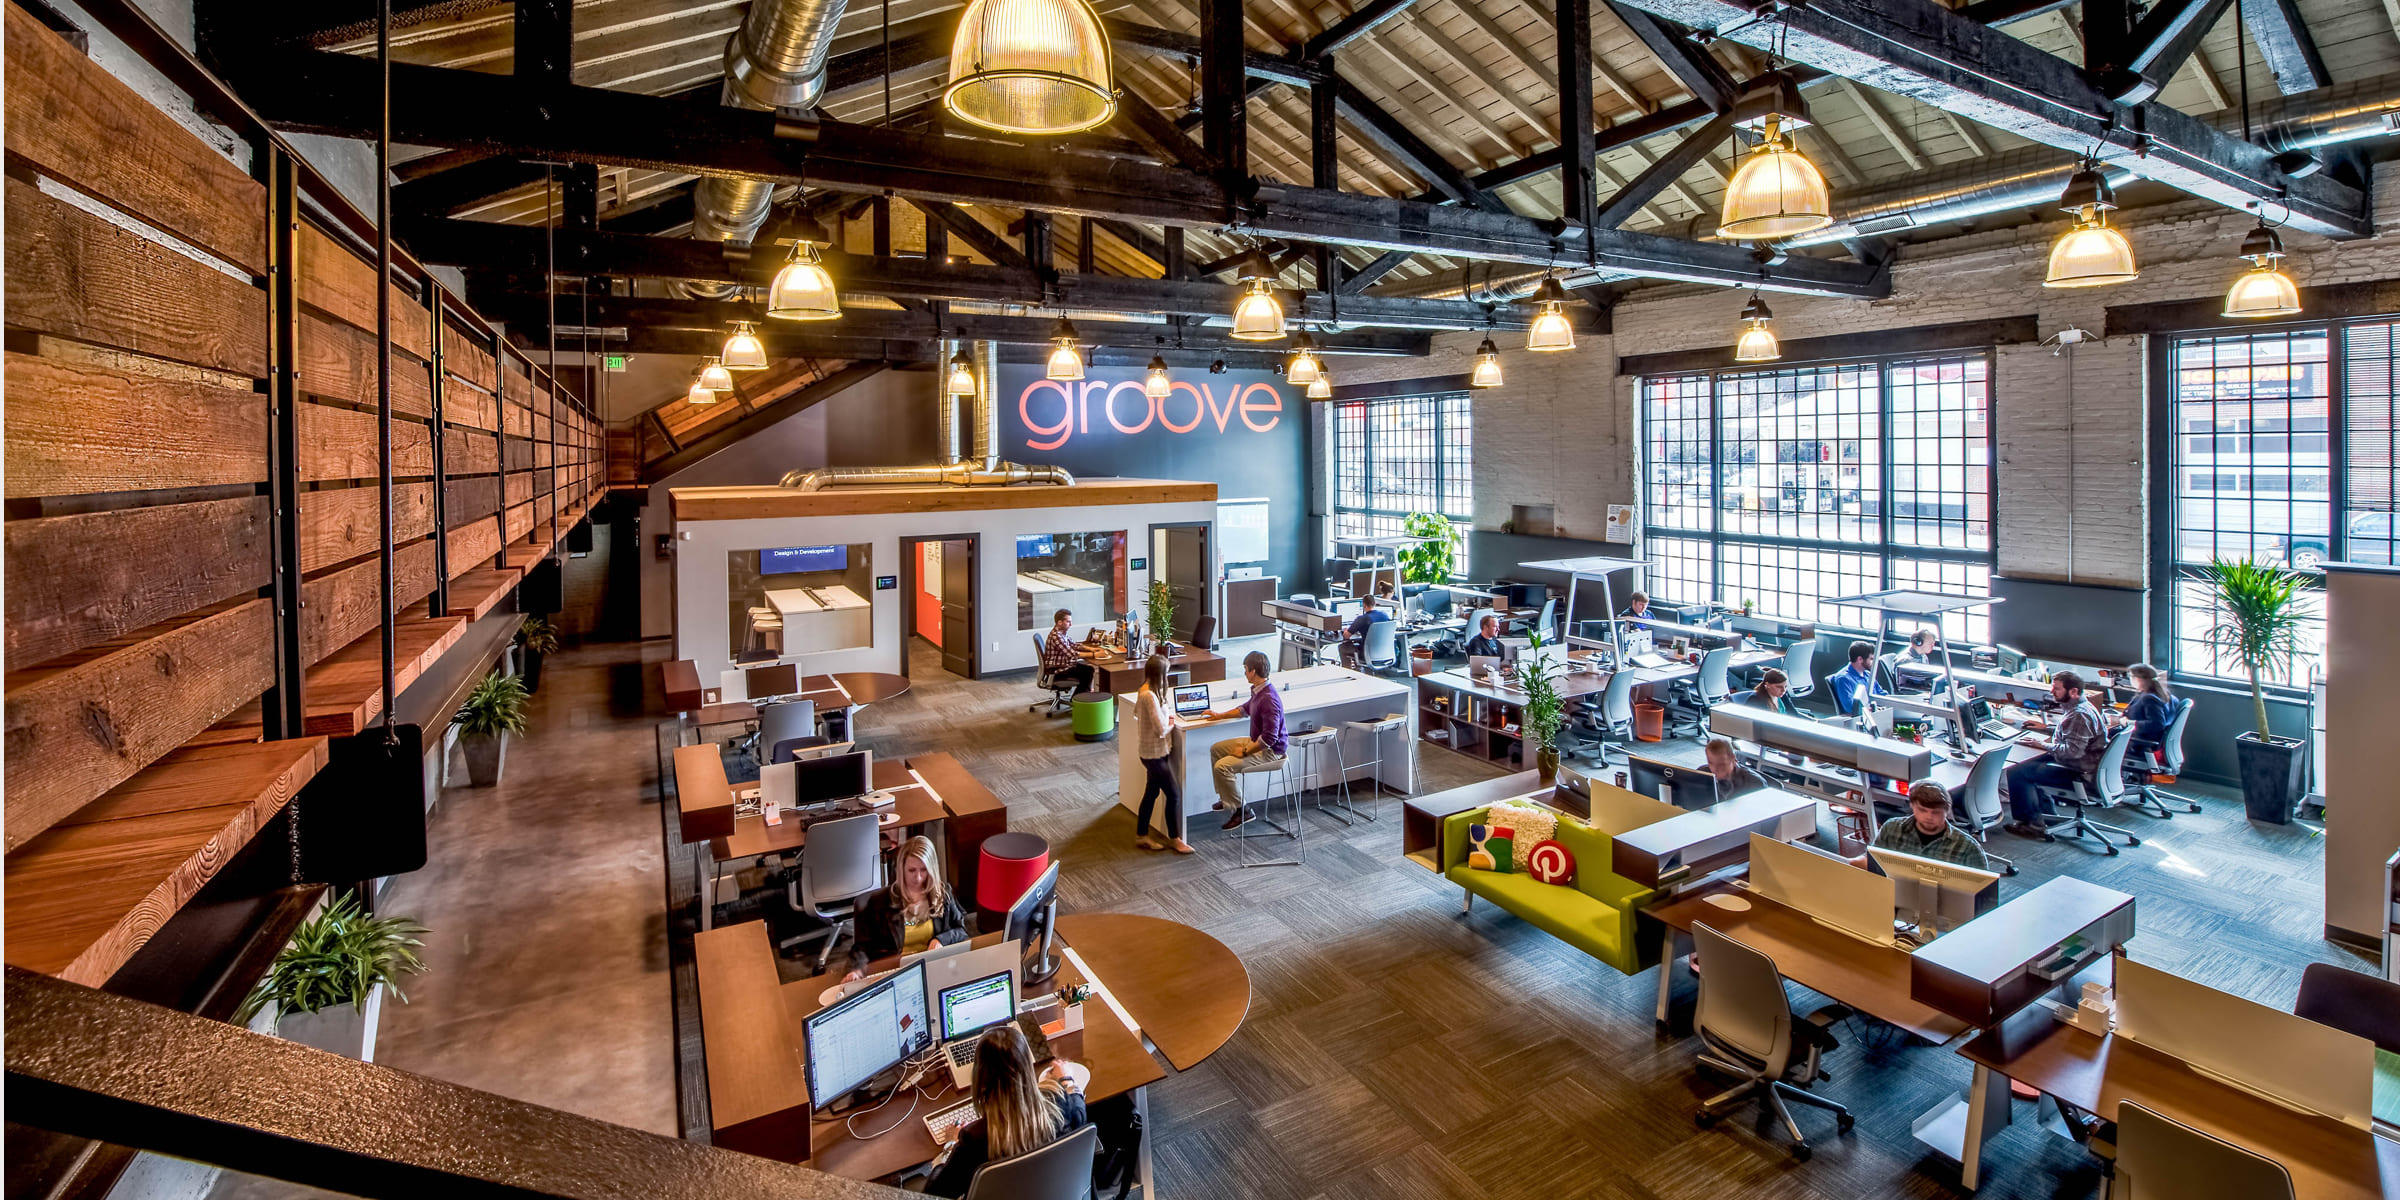 Introducing Groove's New World Headquarters!